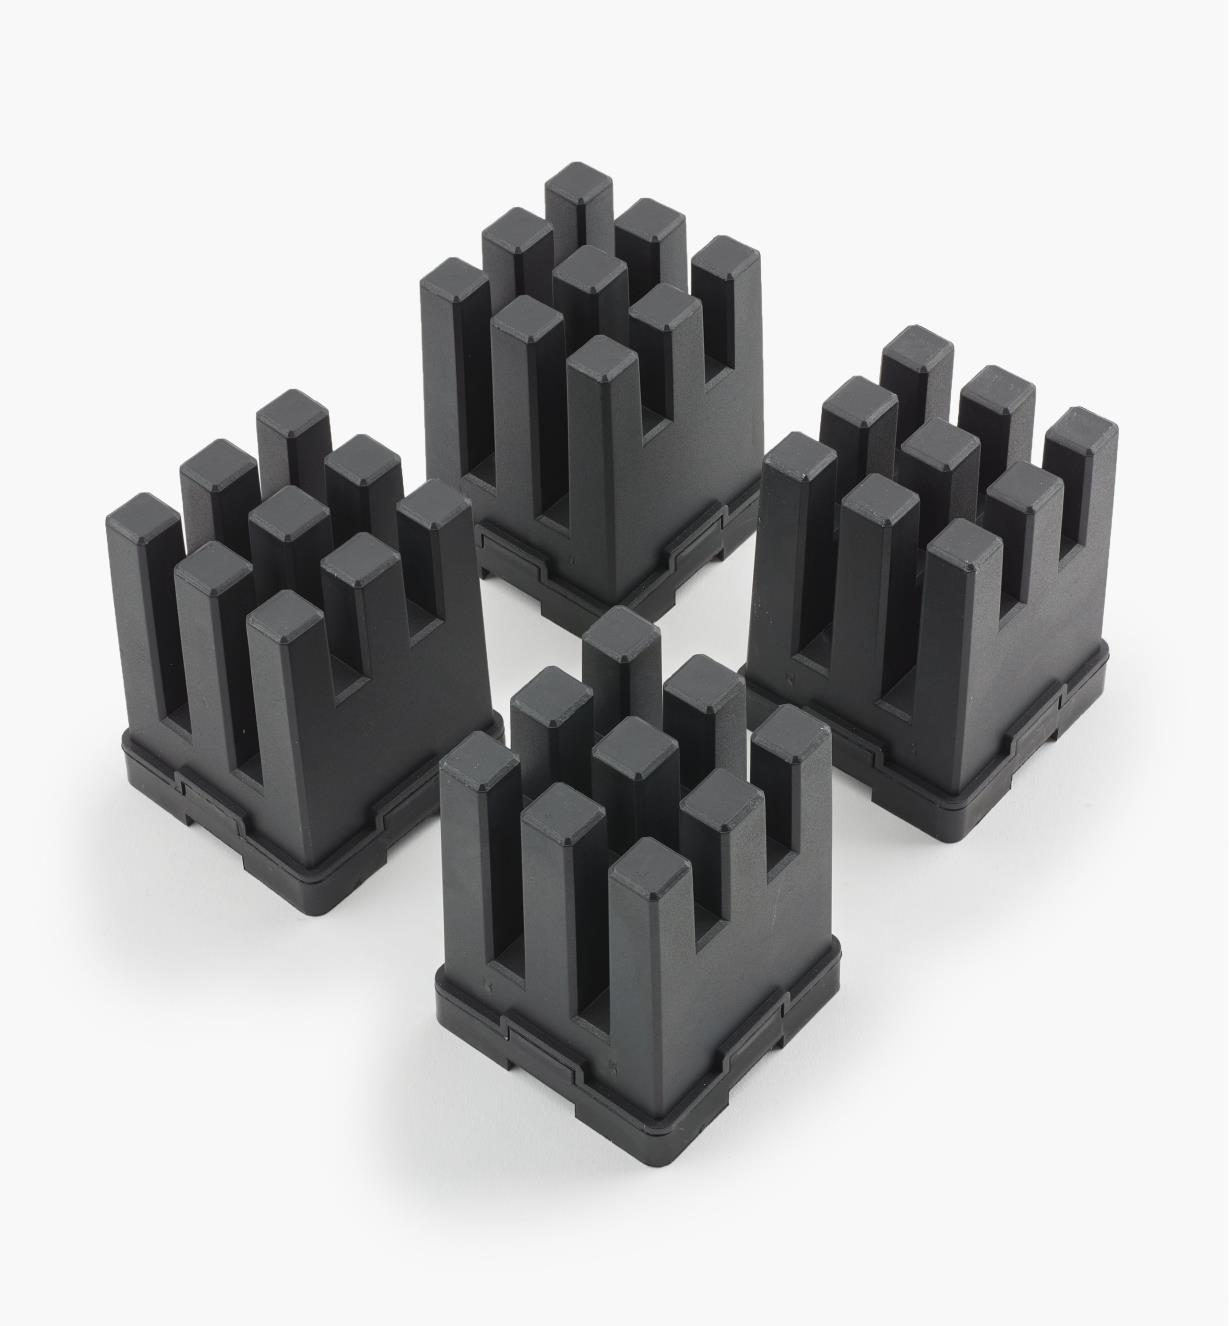 17F7001 - KP Blocks, package of 4